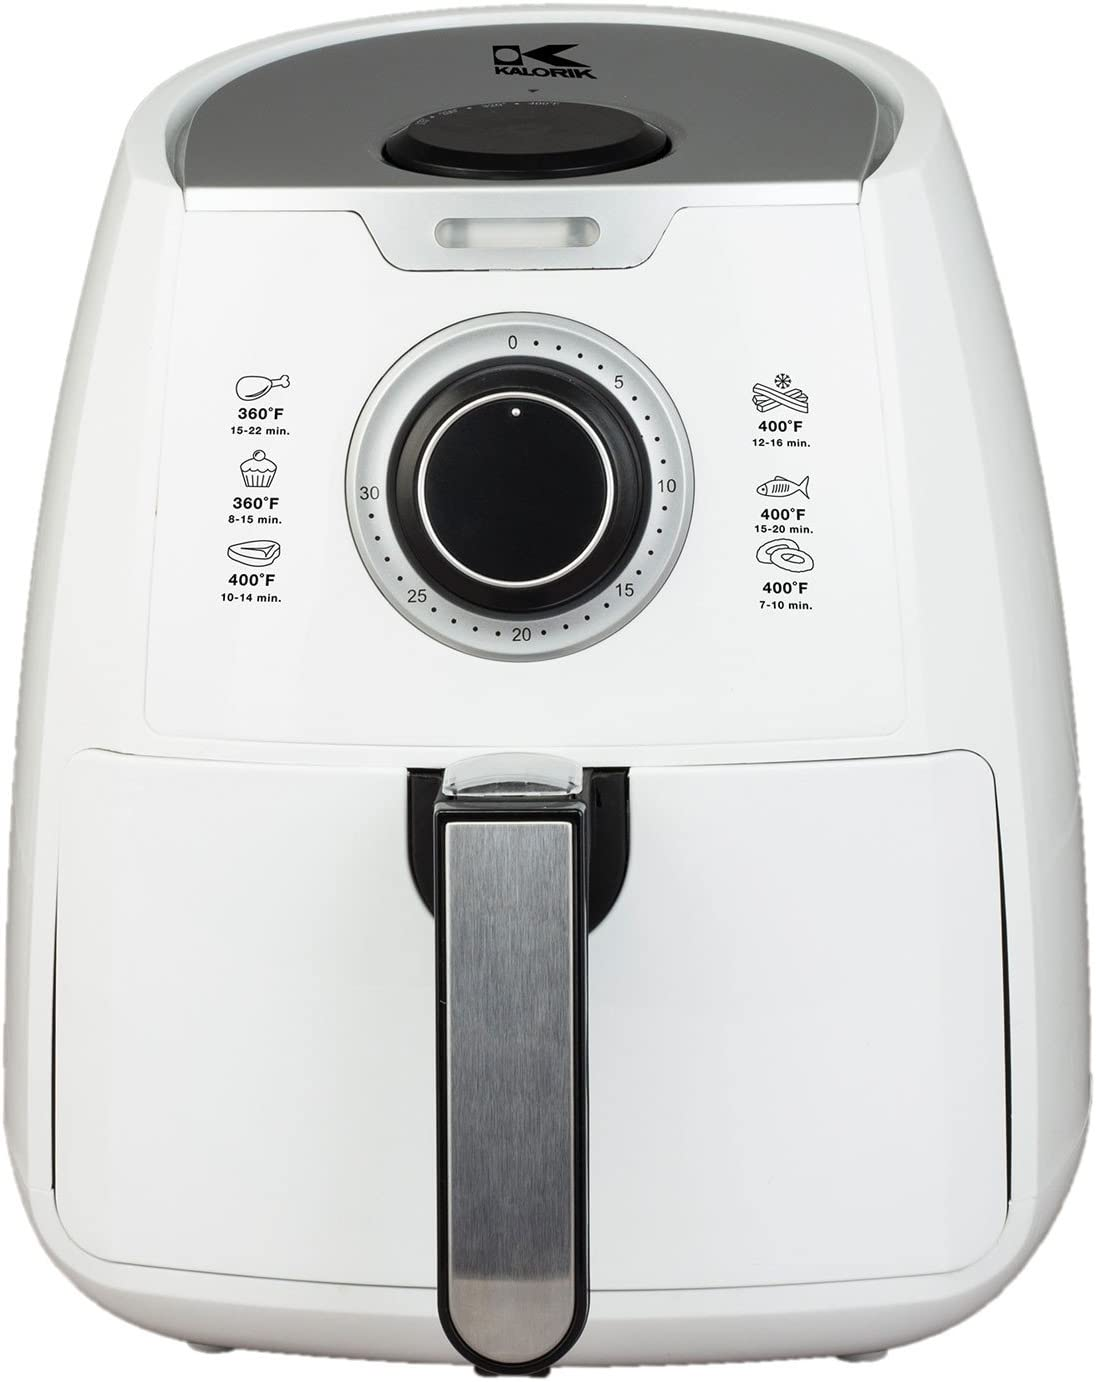 Kalorik Smart Air Fryer, FT 42139 W